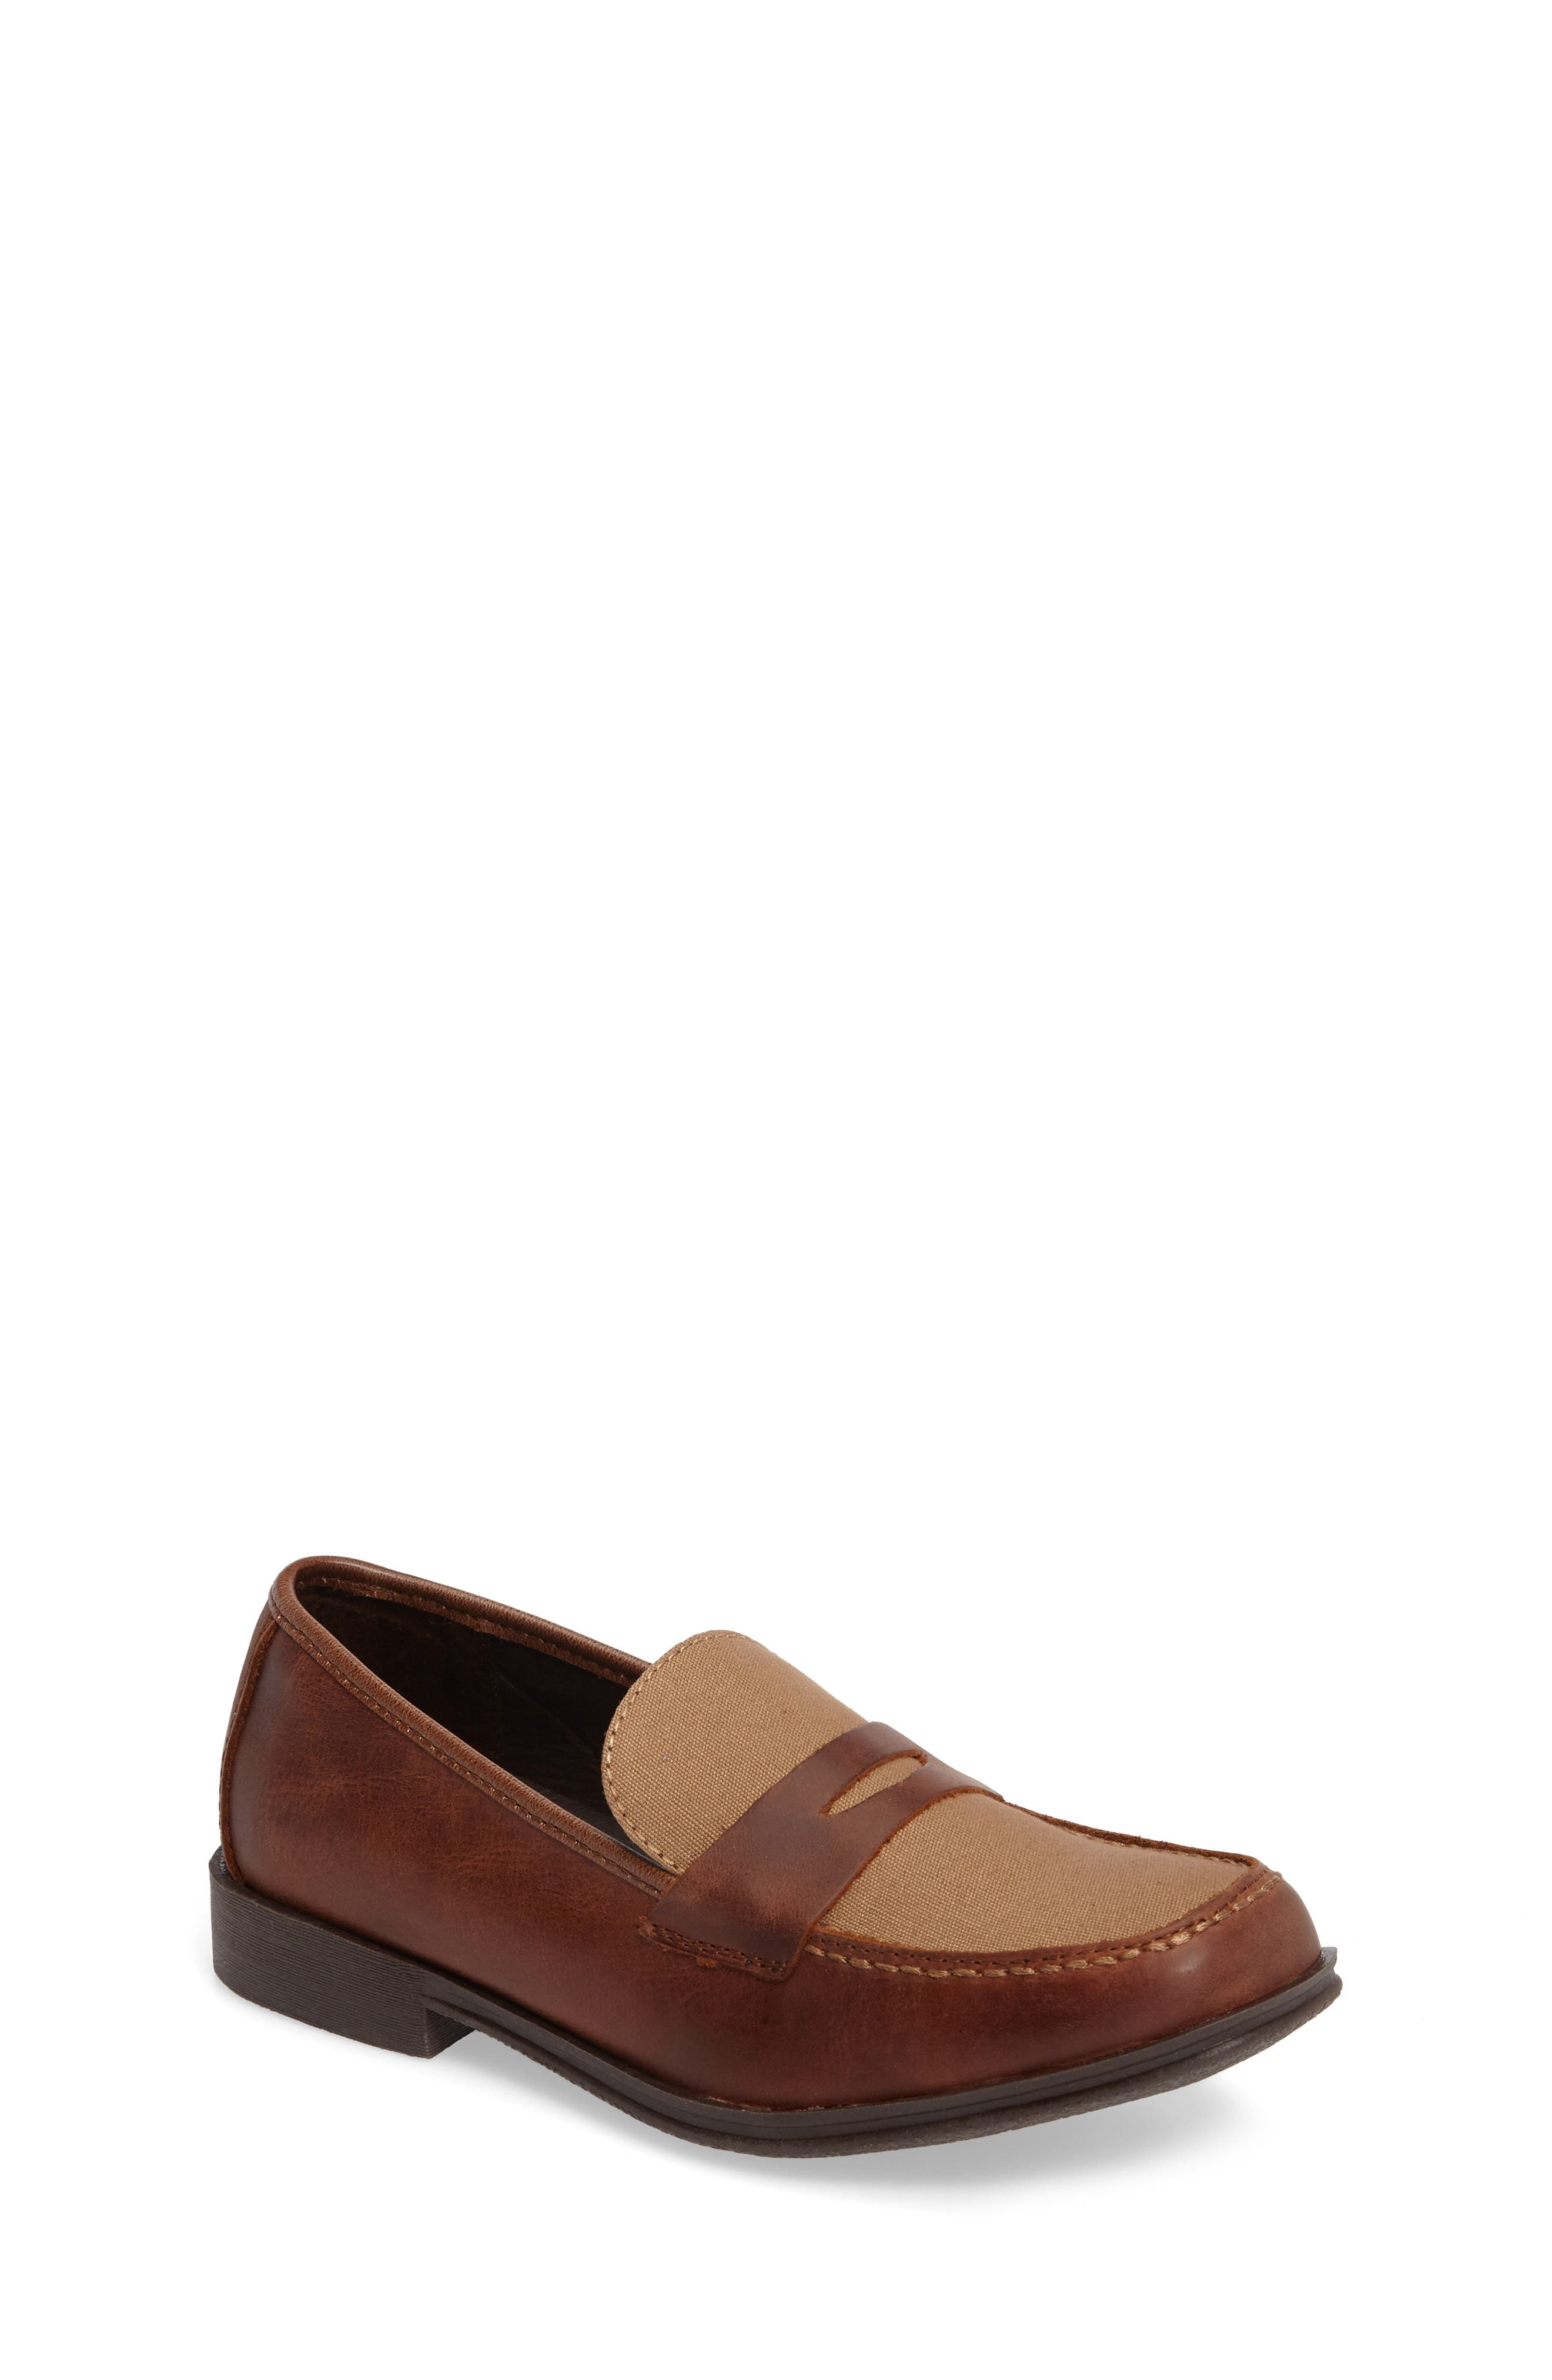 Club Loft Loafer,                             Main thumbnail 1, color,                             200